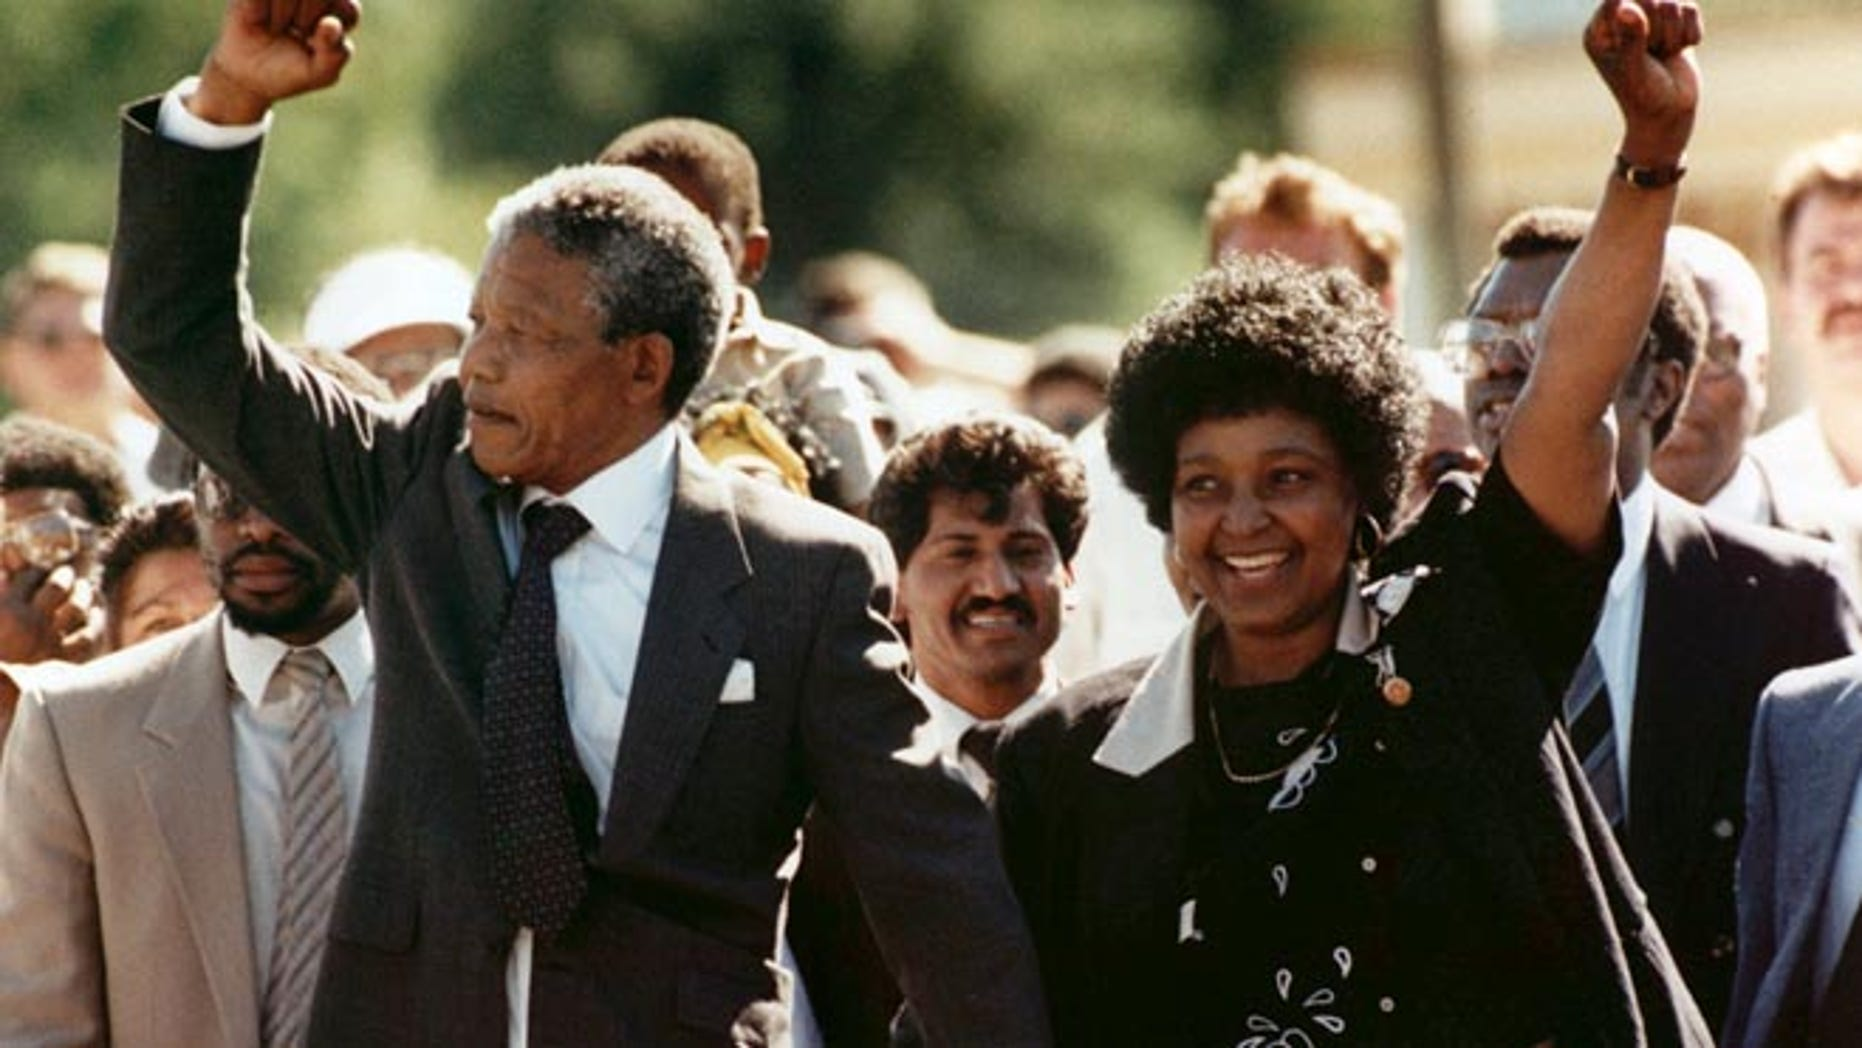 Feb. 11, 1990, In this file photo, Nelson Mandela and his wife, Winnie, raise clenched fists as they walk hand-in-hand upon his release from prison in Cape Town, South Africa.